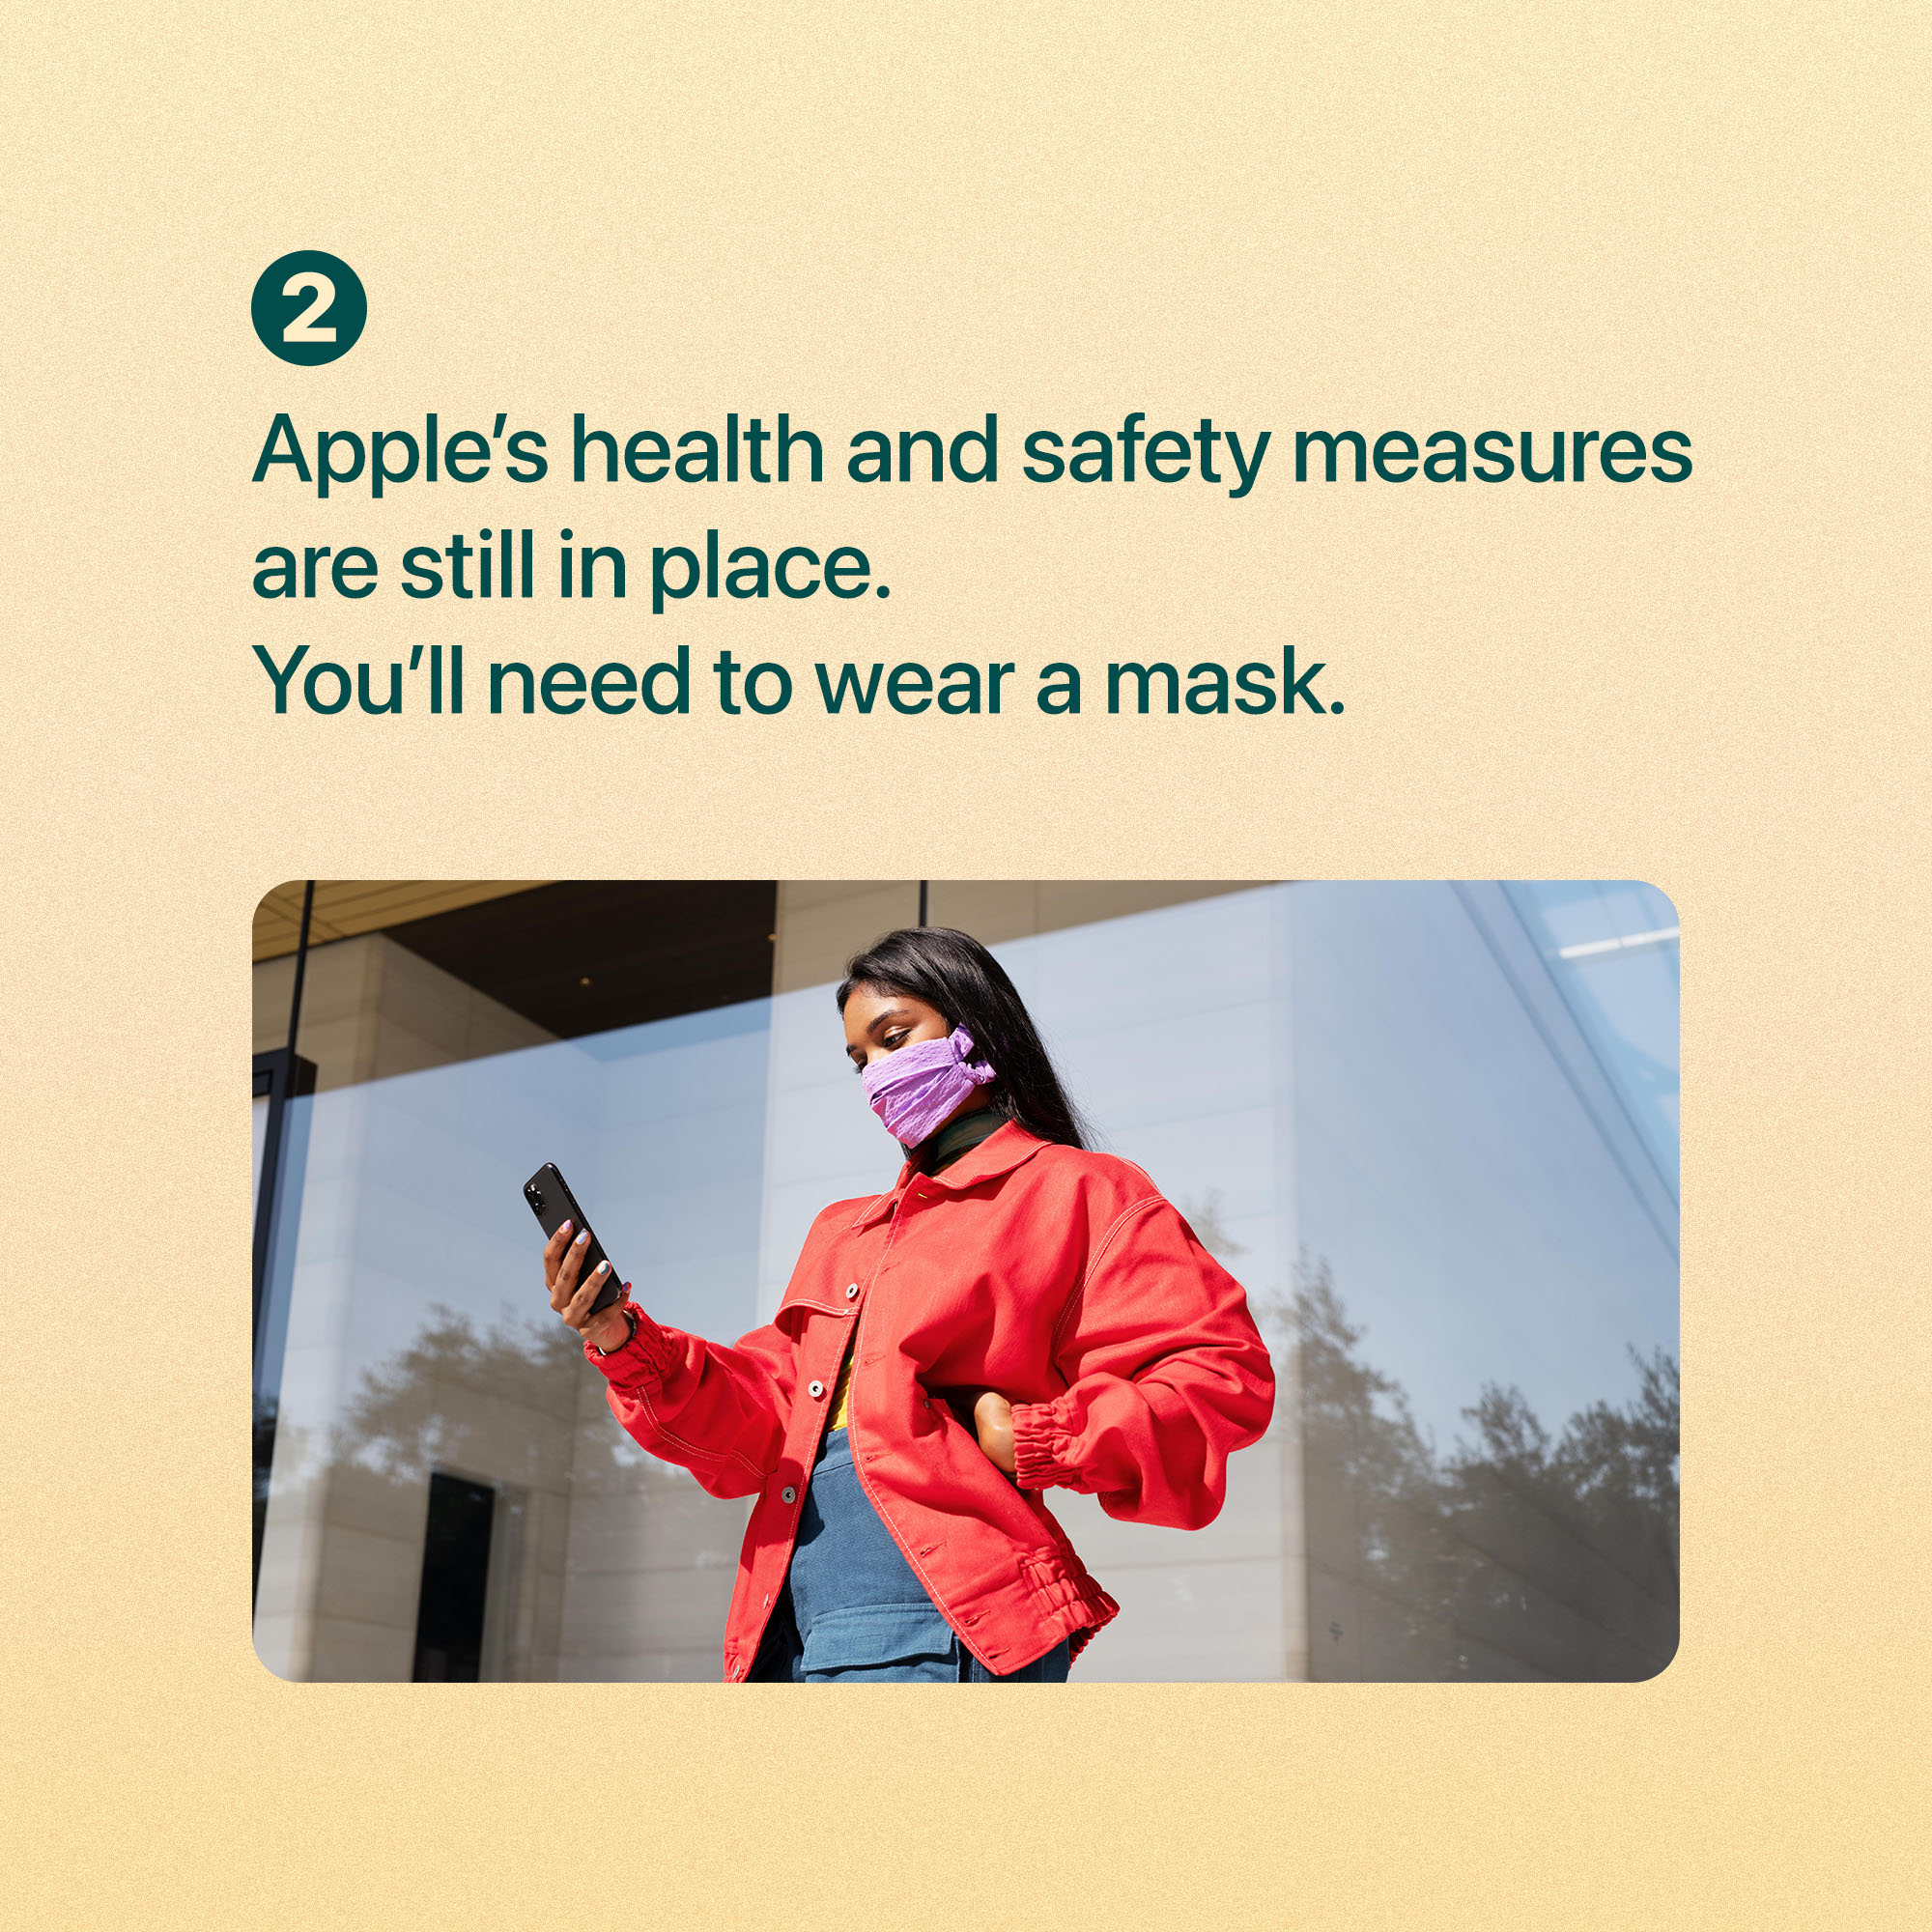 Apple's health and safety measures are still in place. You'll need to wear a mask.